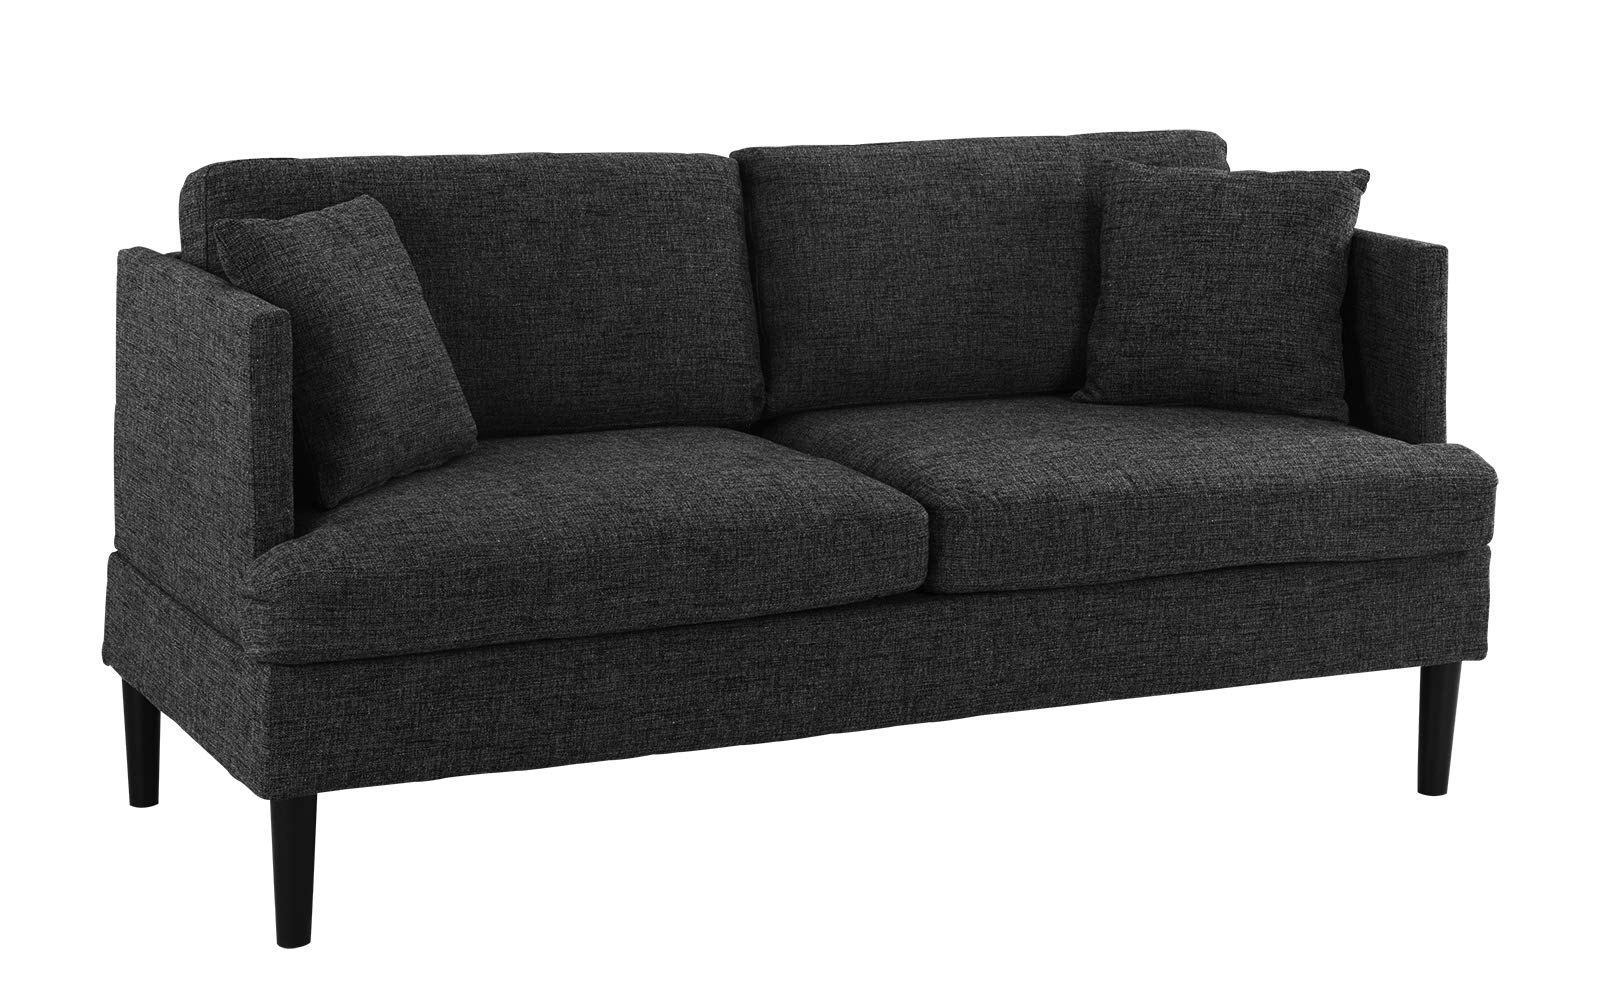 Modern Upholstered Loveseat Sofa/Couch (Ash Grey) - Mid Century style modern living room loveseat couch with decorative pillows and wooden legs. Square frame with club-style armrests. Upholstered in woven marbled soft linen fabric with 2 additional pillows in the same fabric. The perfect size sofa for a studio apartment and or a guest room. Comfortable cushions filled with high density foam. - sofas-couches, living-room-furniture, living-room - 71M68AZaKGL -